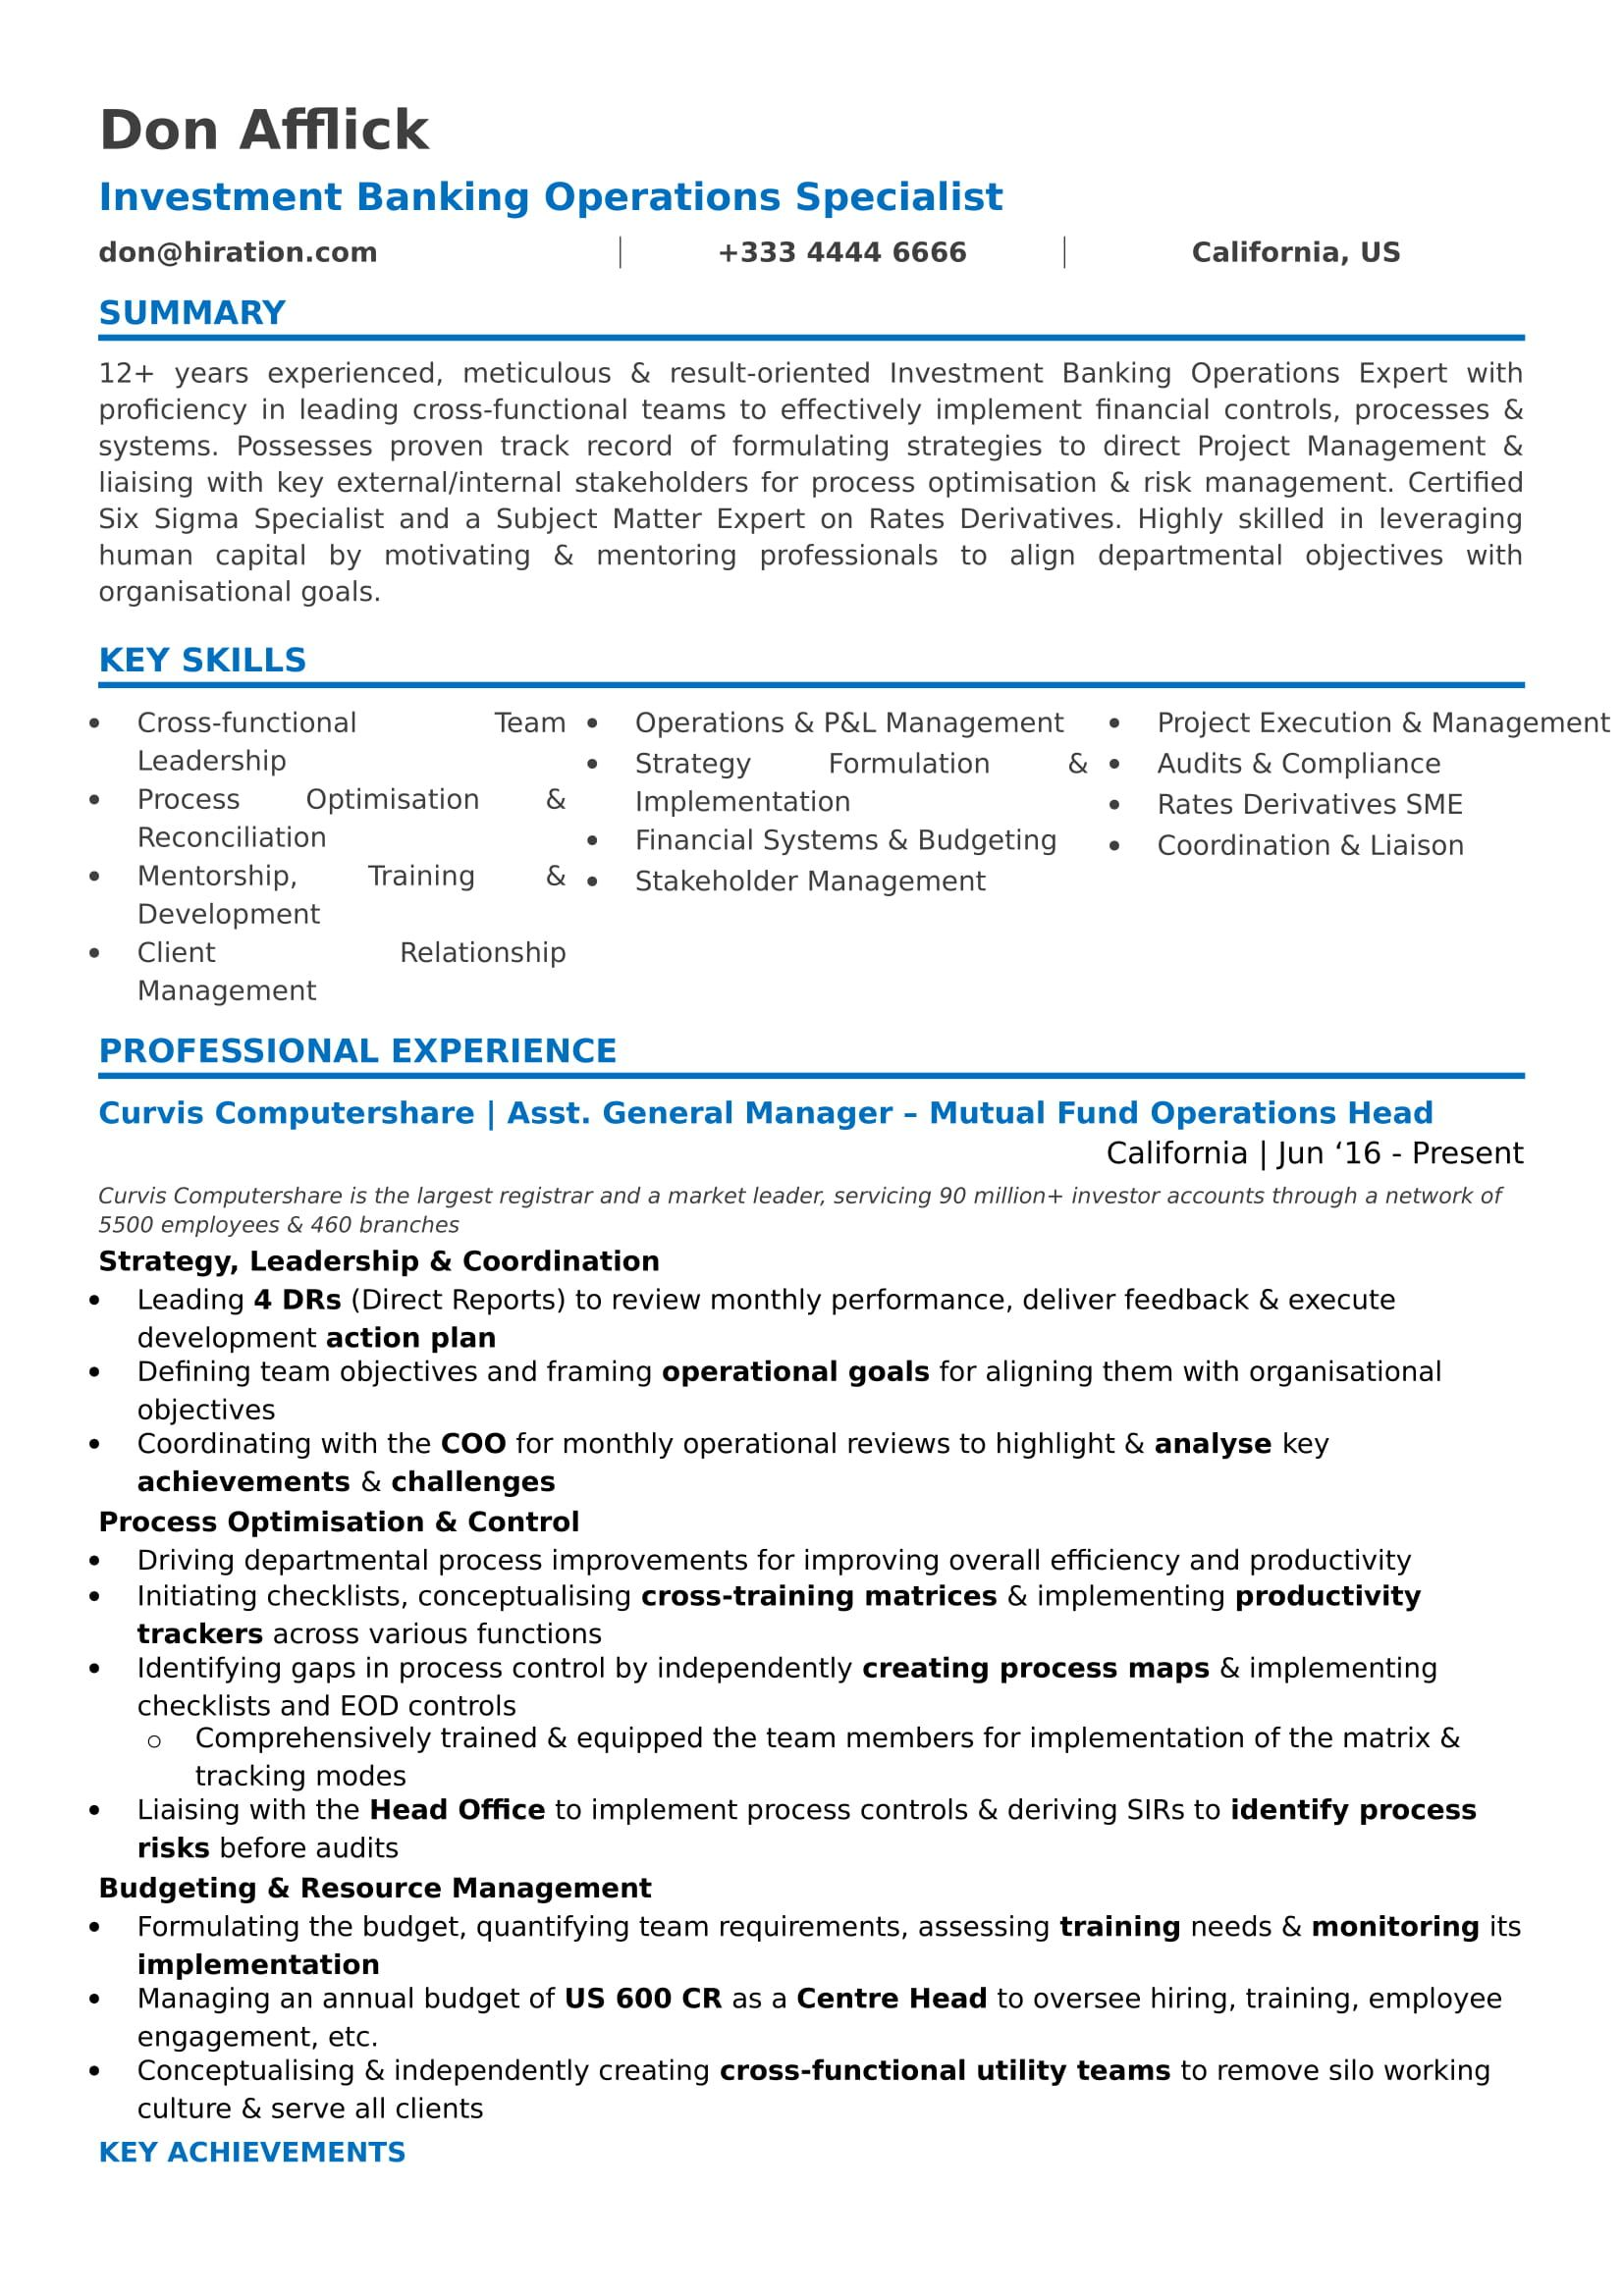 career change resume guide to for summary hiration rohit mahagaonkar cv inquietante Resume Resume Summary For Career Change